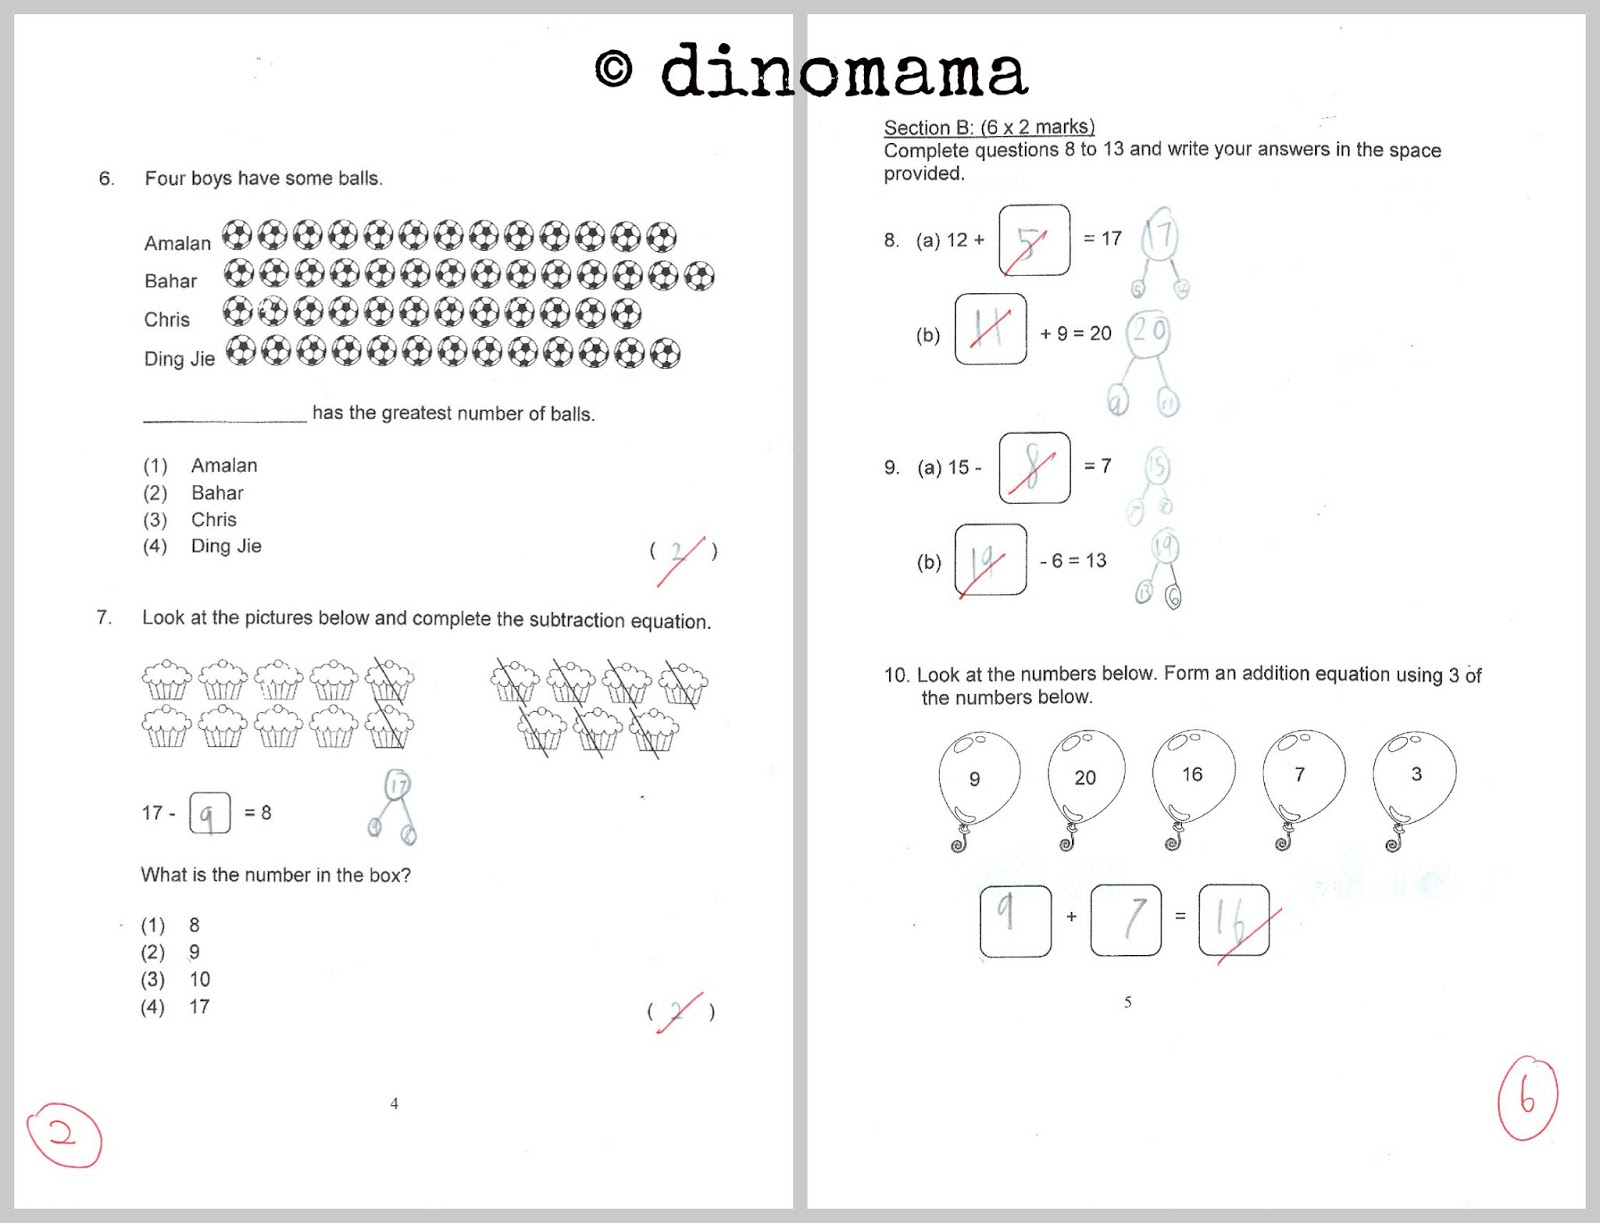 2nd paper primary stdiv term test Primary 5 english hk mockpdf enhancement all rights reserved page 5 primary 1 2nd term mock exam paper (5) 20 pre-s1 hong kong attainment test (primary 5.